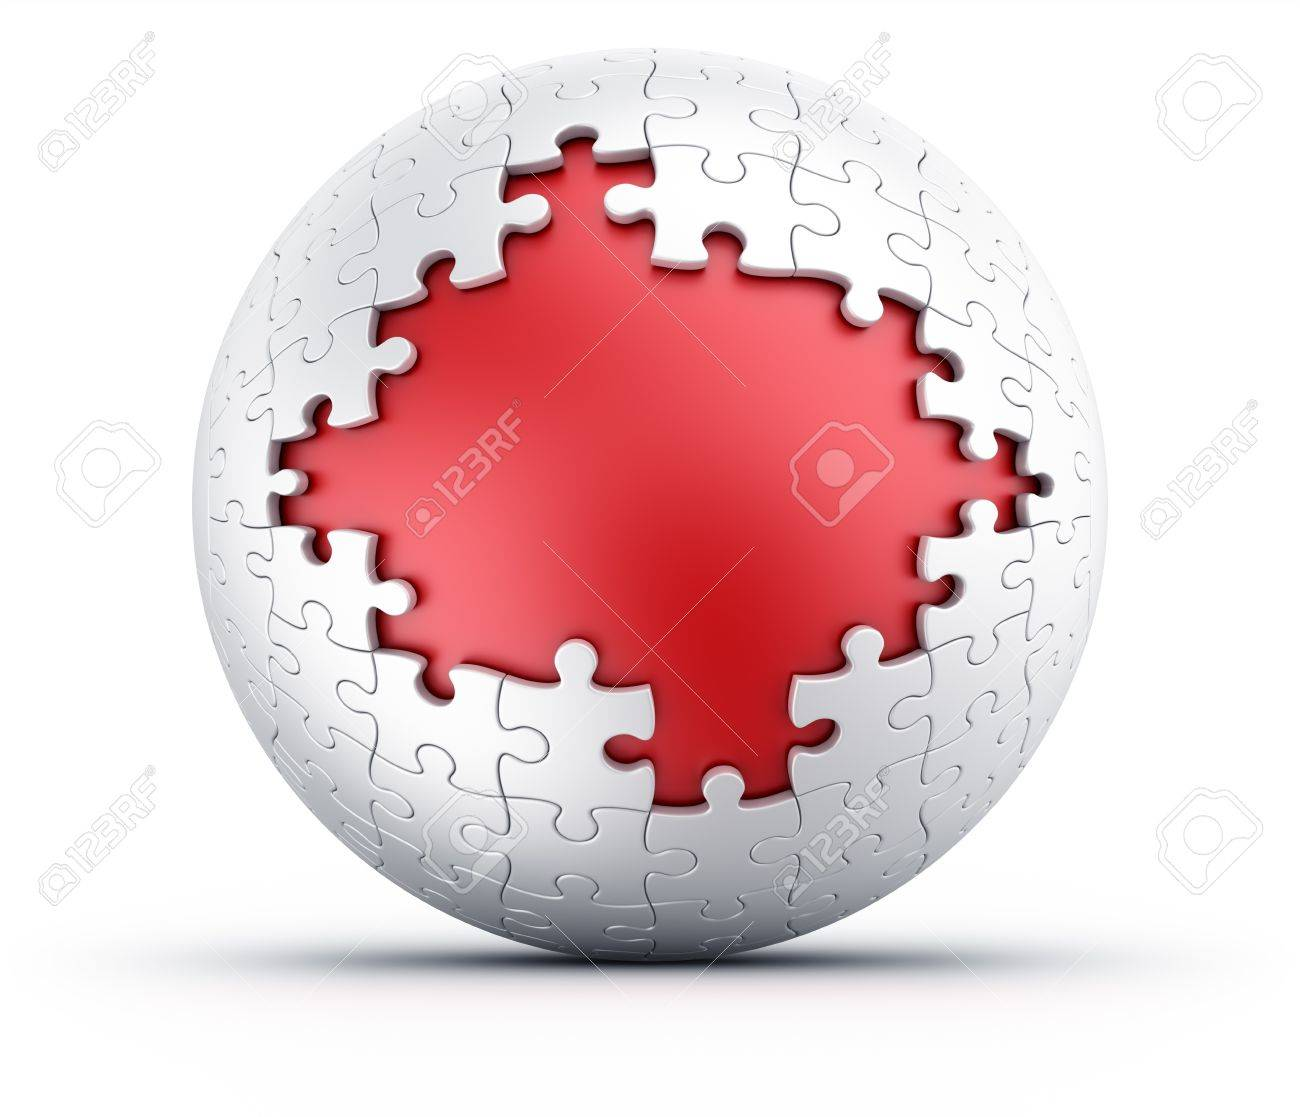 3d rendering of a spherical puzzle with pieces missing Stock Photo - 11503861